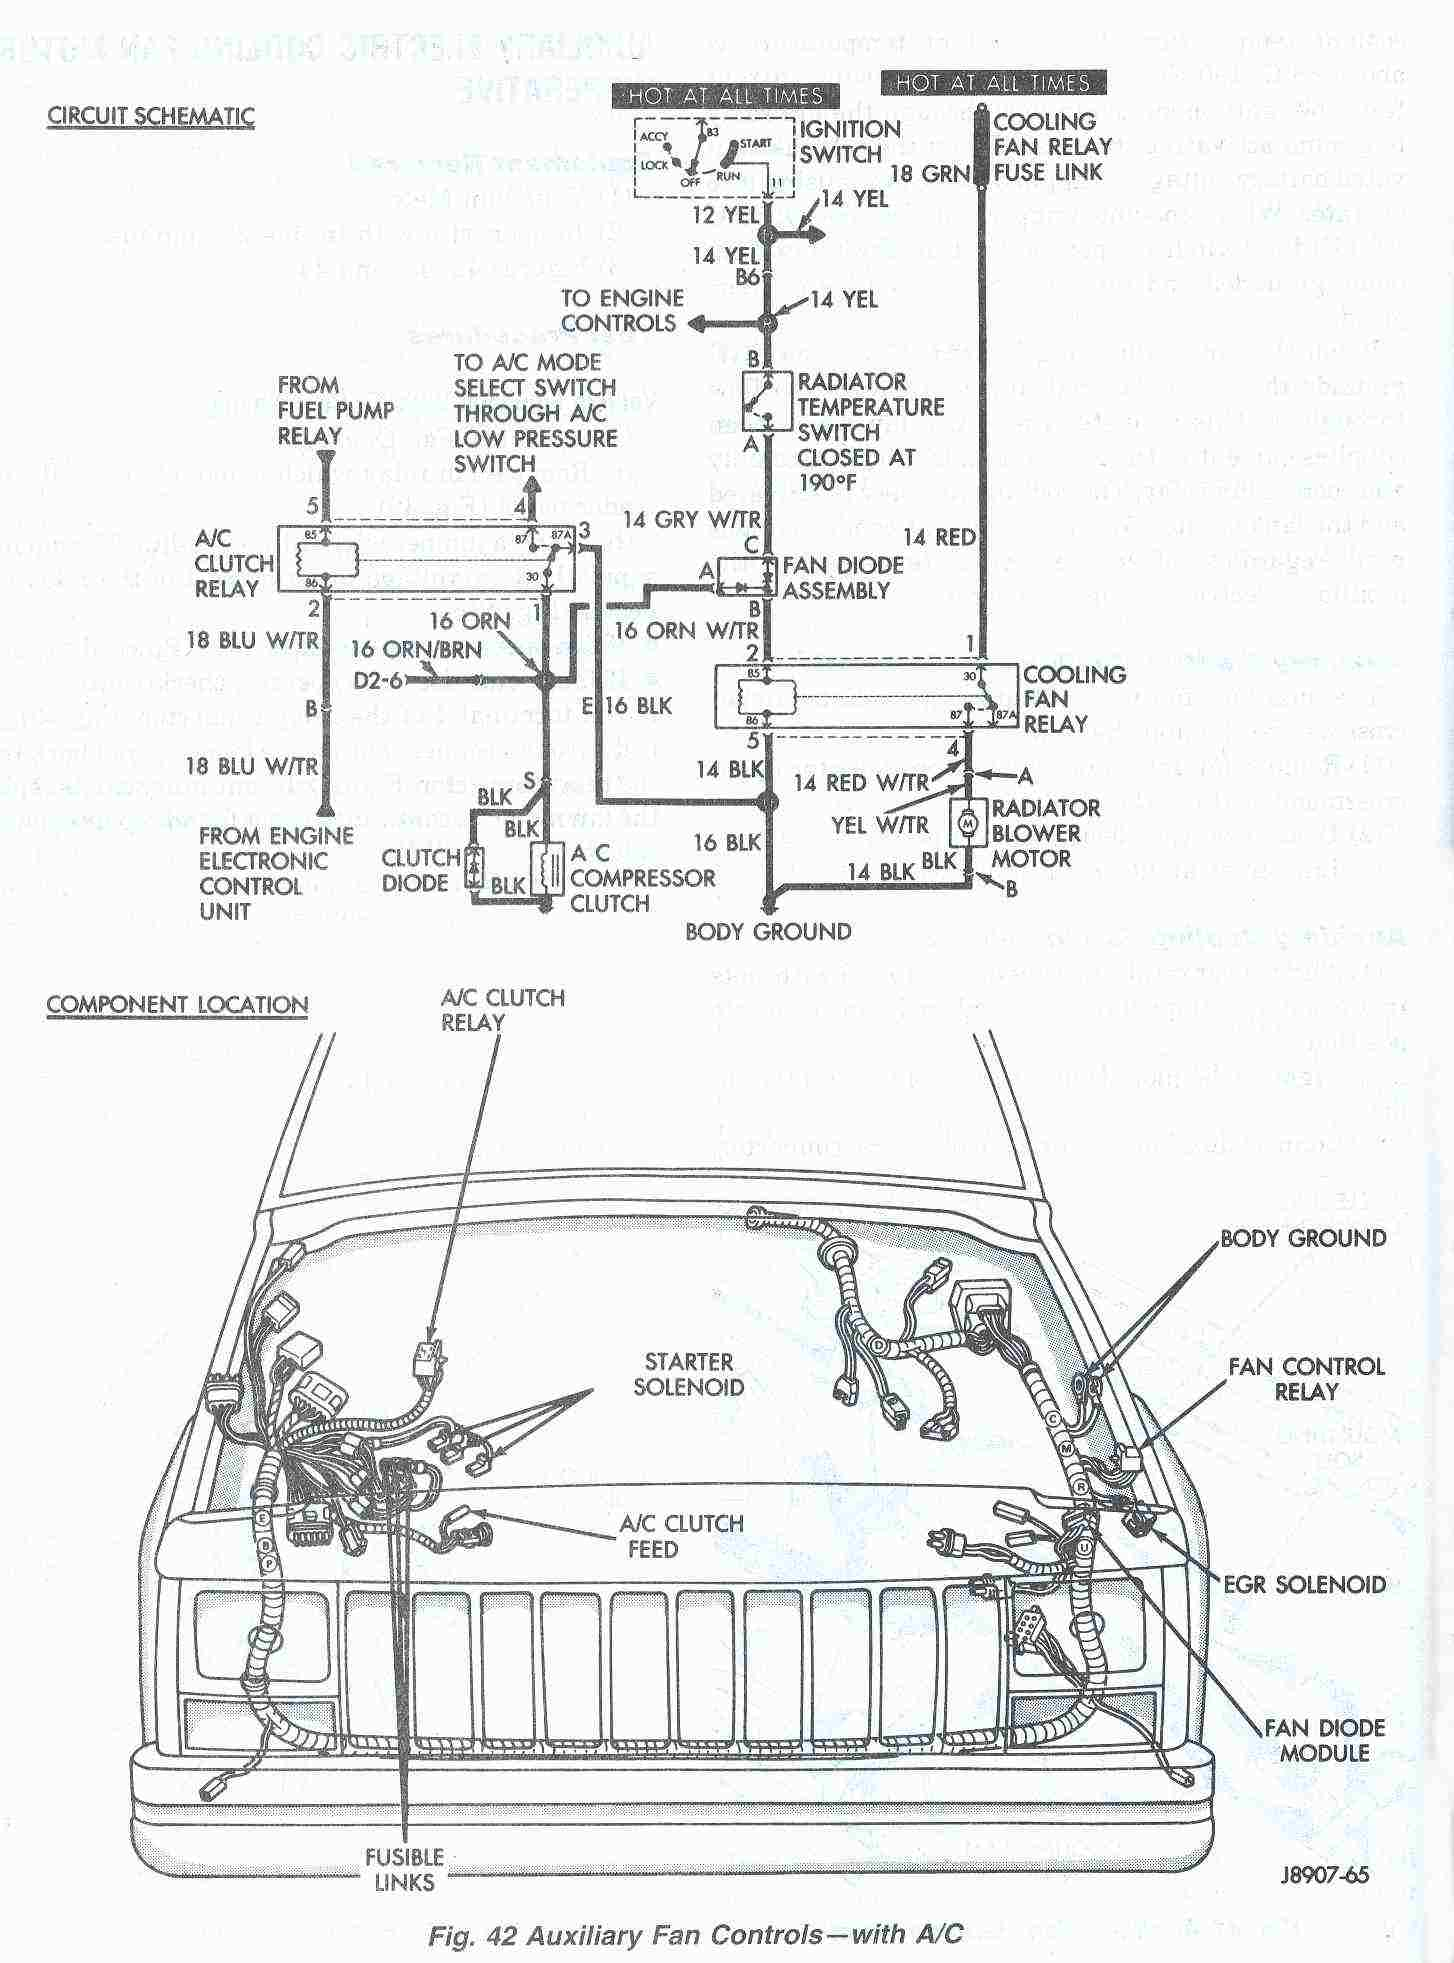 2002 jeep grand cherokee wiring diagram, Wiring diagram